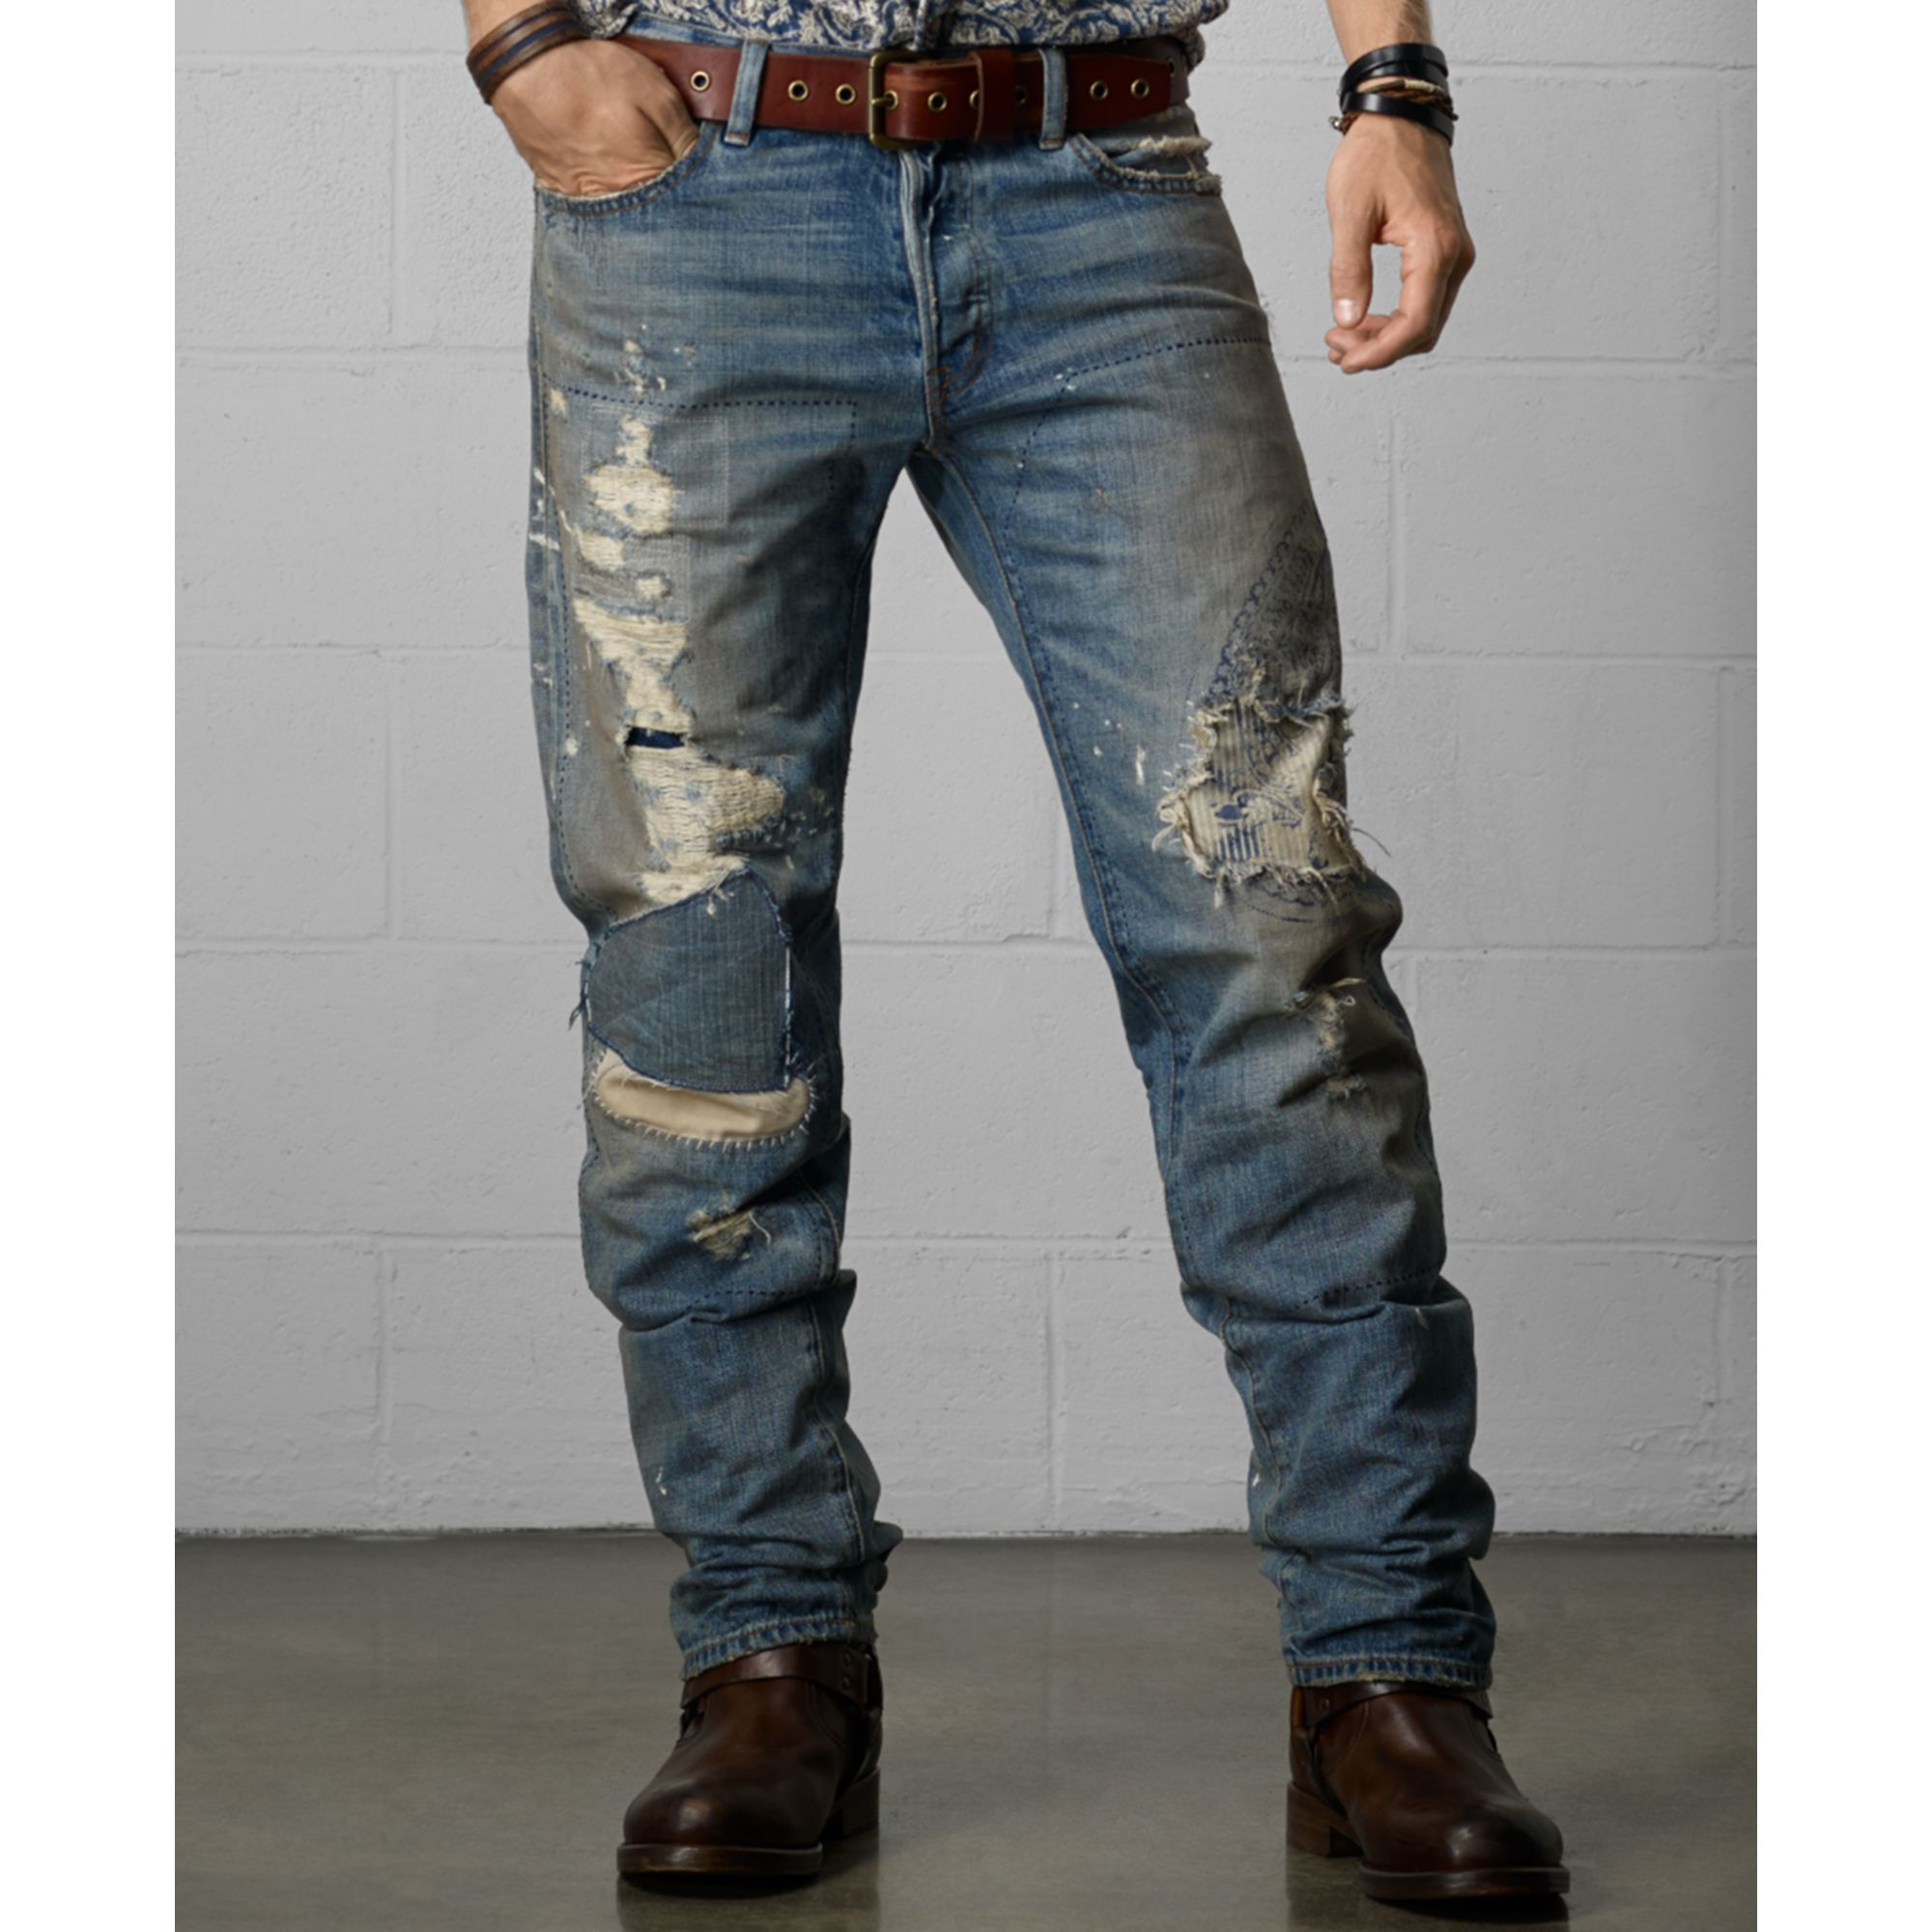 Lyst - Denim & Supply Ralph Lauren Distressed Straightfit ...